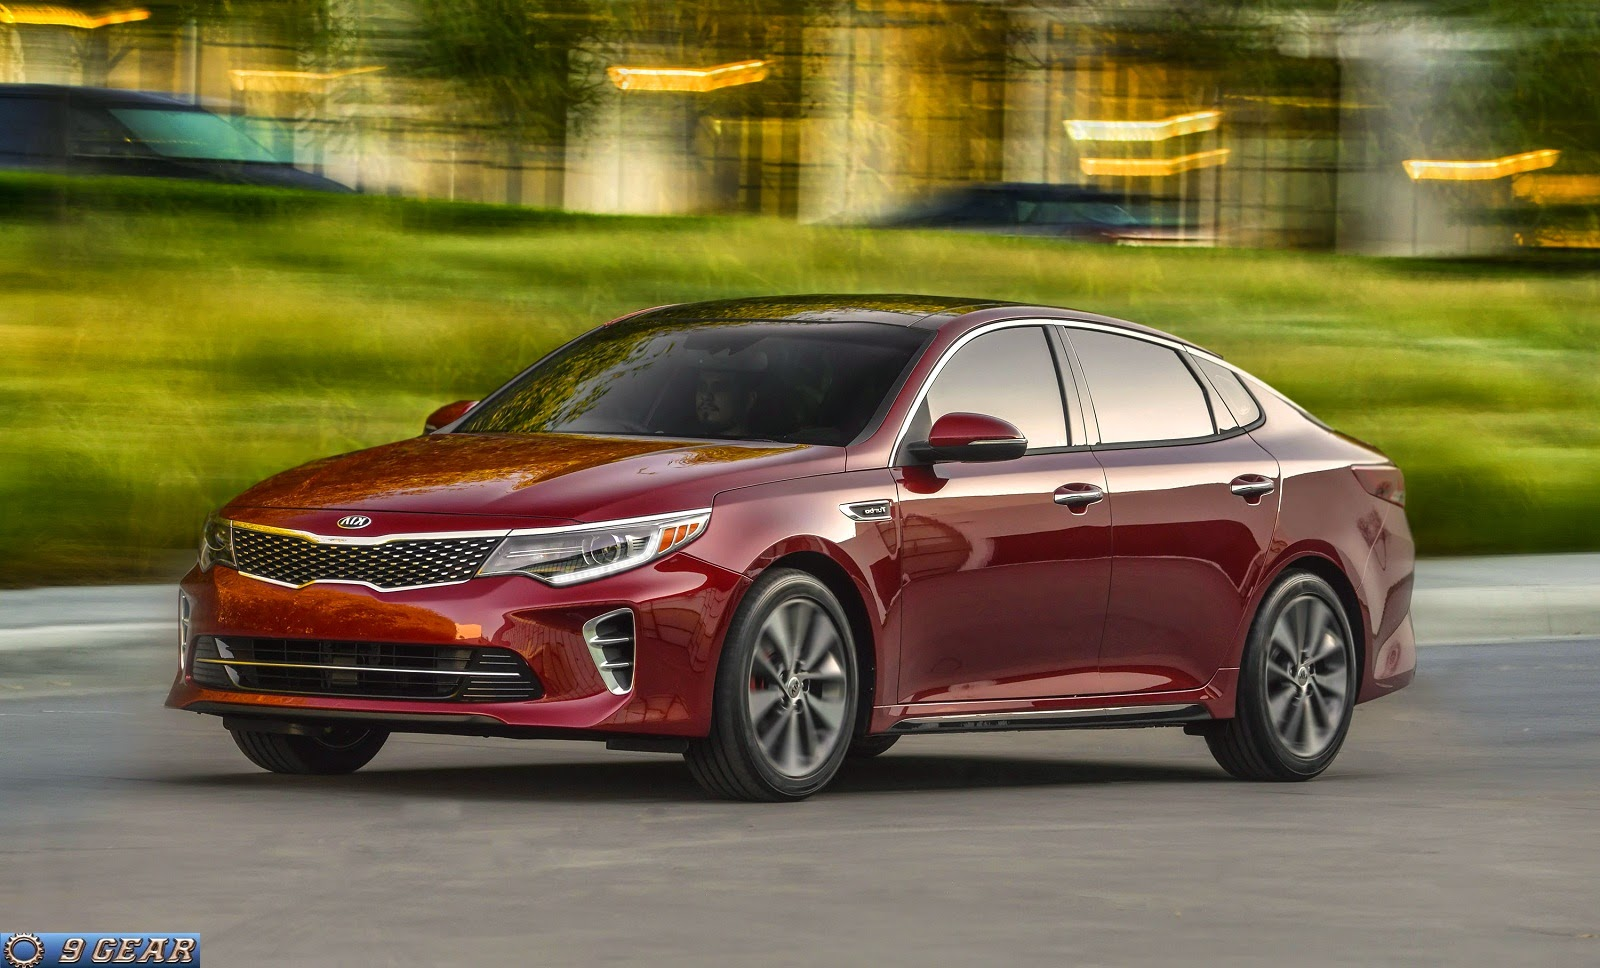 2016 kia optima 1 6 liter four cylinder turbo car. Black Bedroom Furniture Sets. Home Design Ideas